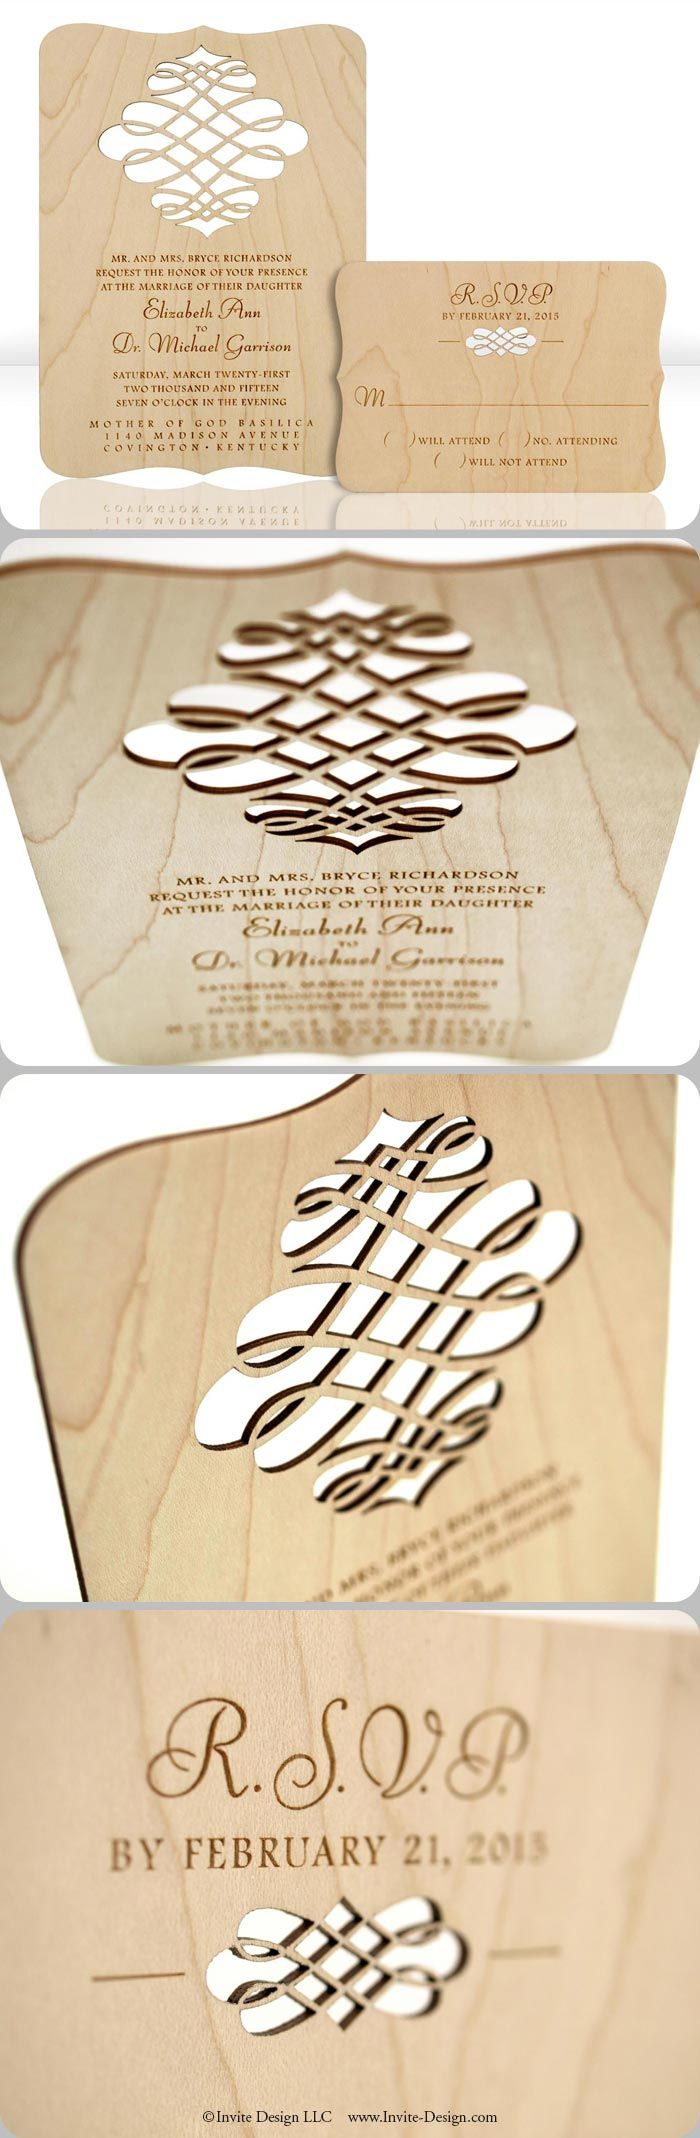 287 Best Laser Cutting Ideas Images On Pinterest Laser Cutting